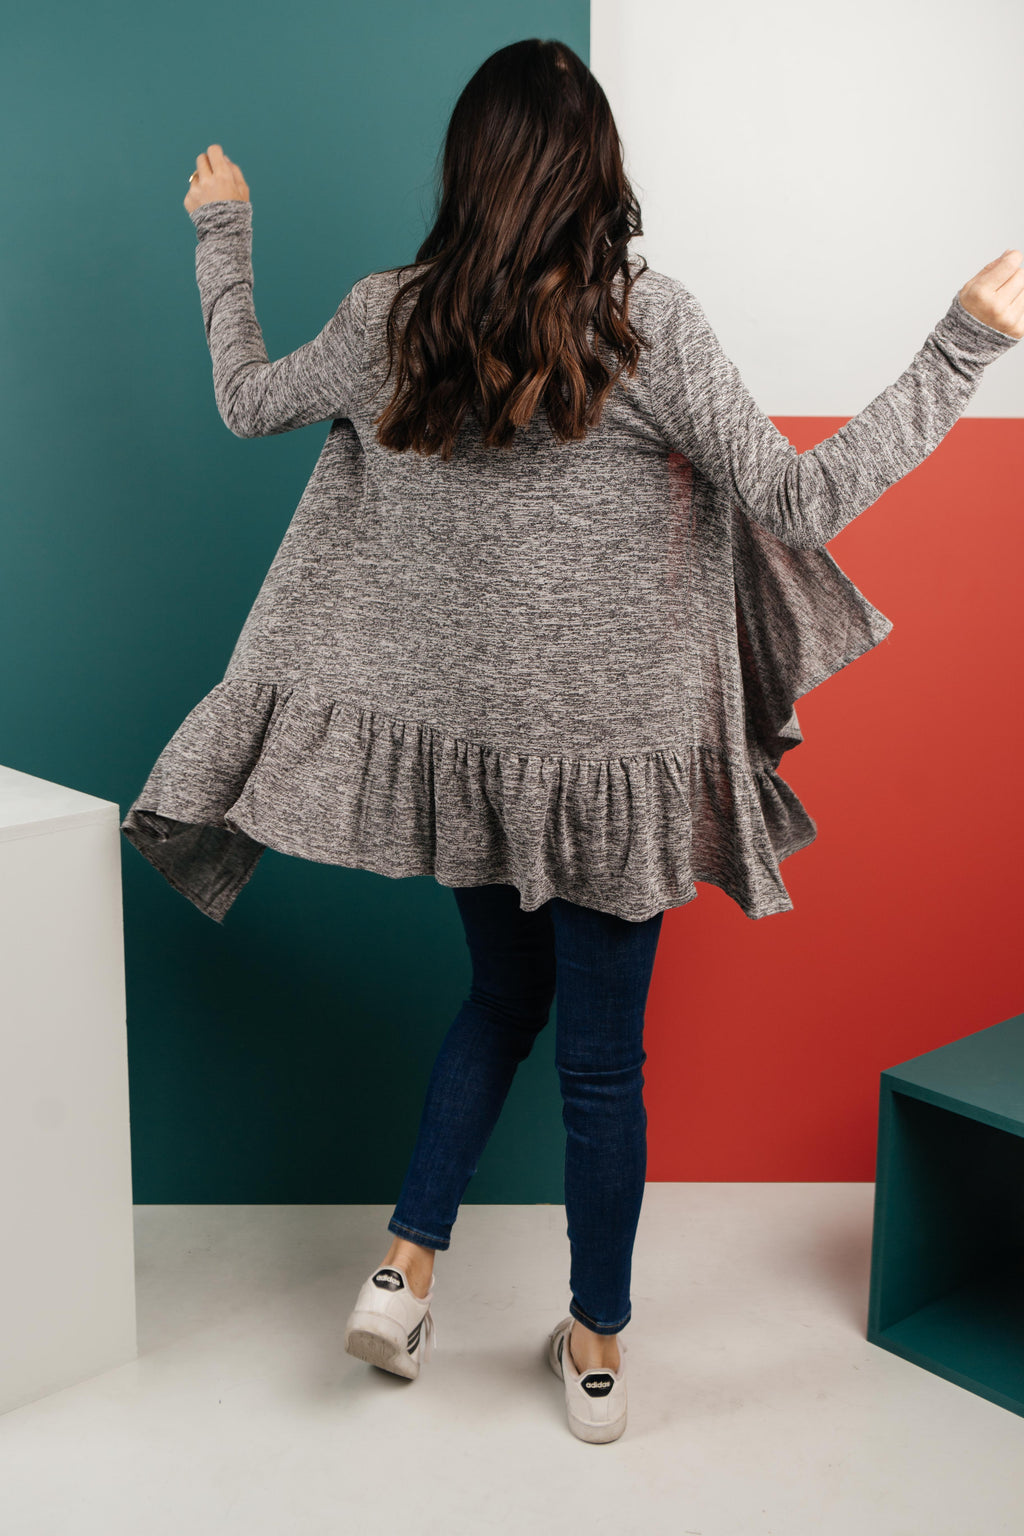 The Avalynn Heathered Cardigan in Smoky Coal-1-5-2021, 1XL, 2XL, 3XL, Group A, Group B, Group C, Large, Medium, Small, Tops, XL, XS-Womens Artisan USA American Made Clothing Accessories